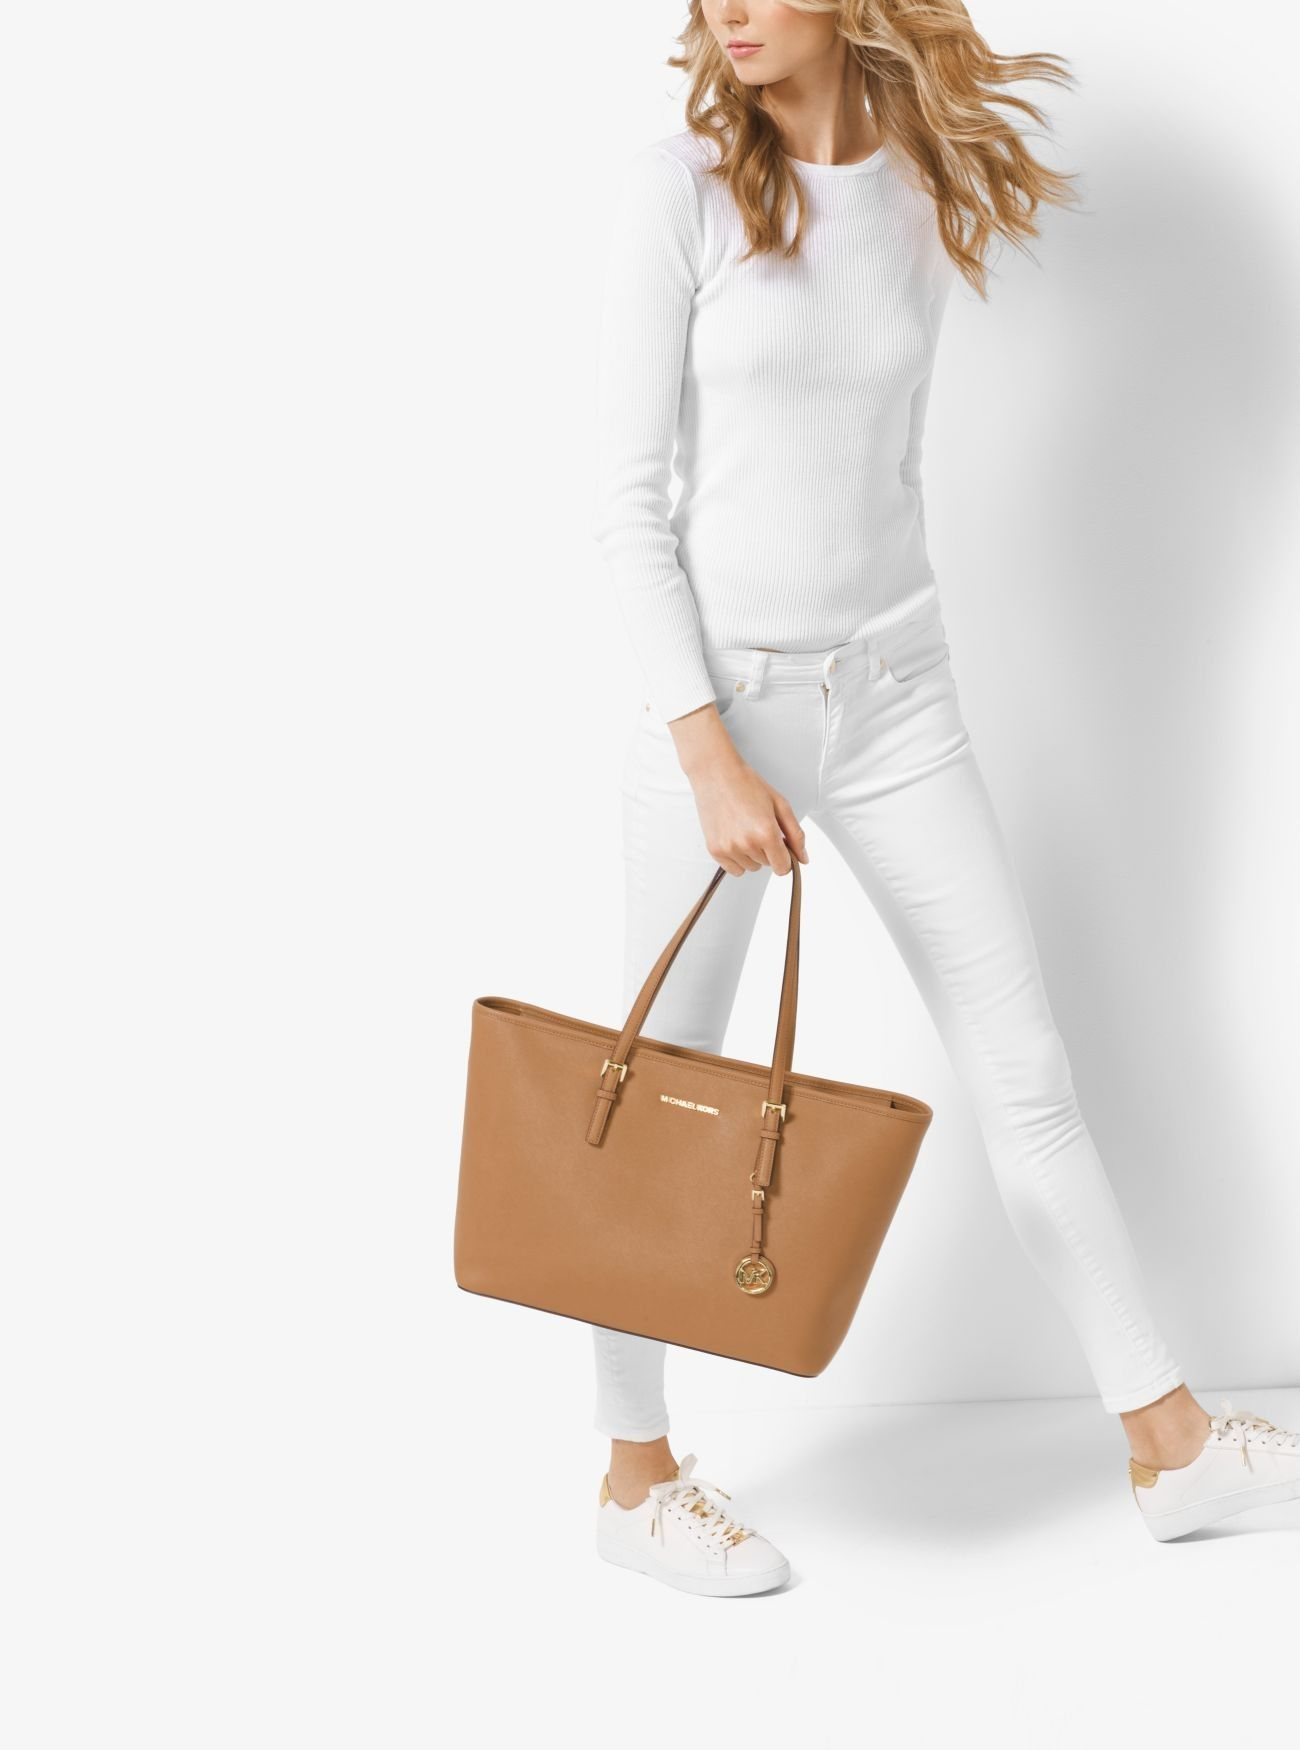 a99350c3eef7 Buy Michael Kors Acorn1 Jet Set Travel Medium Saffiano Leather Top-Zip Tote  Price